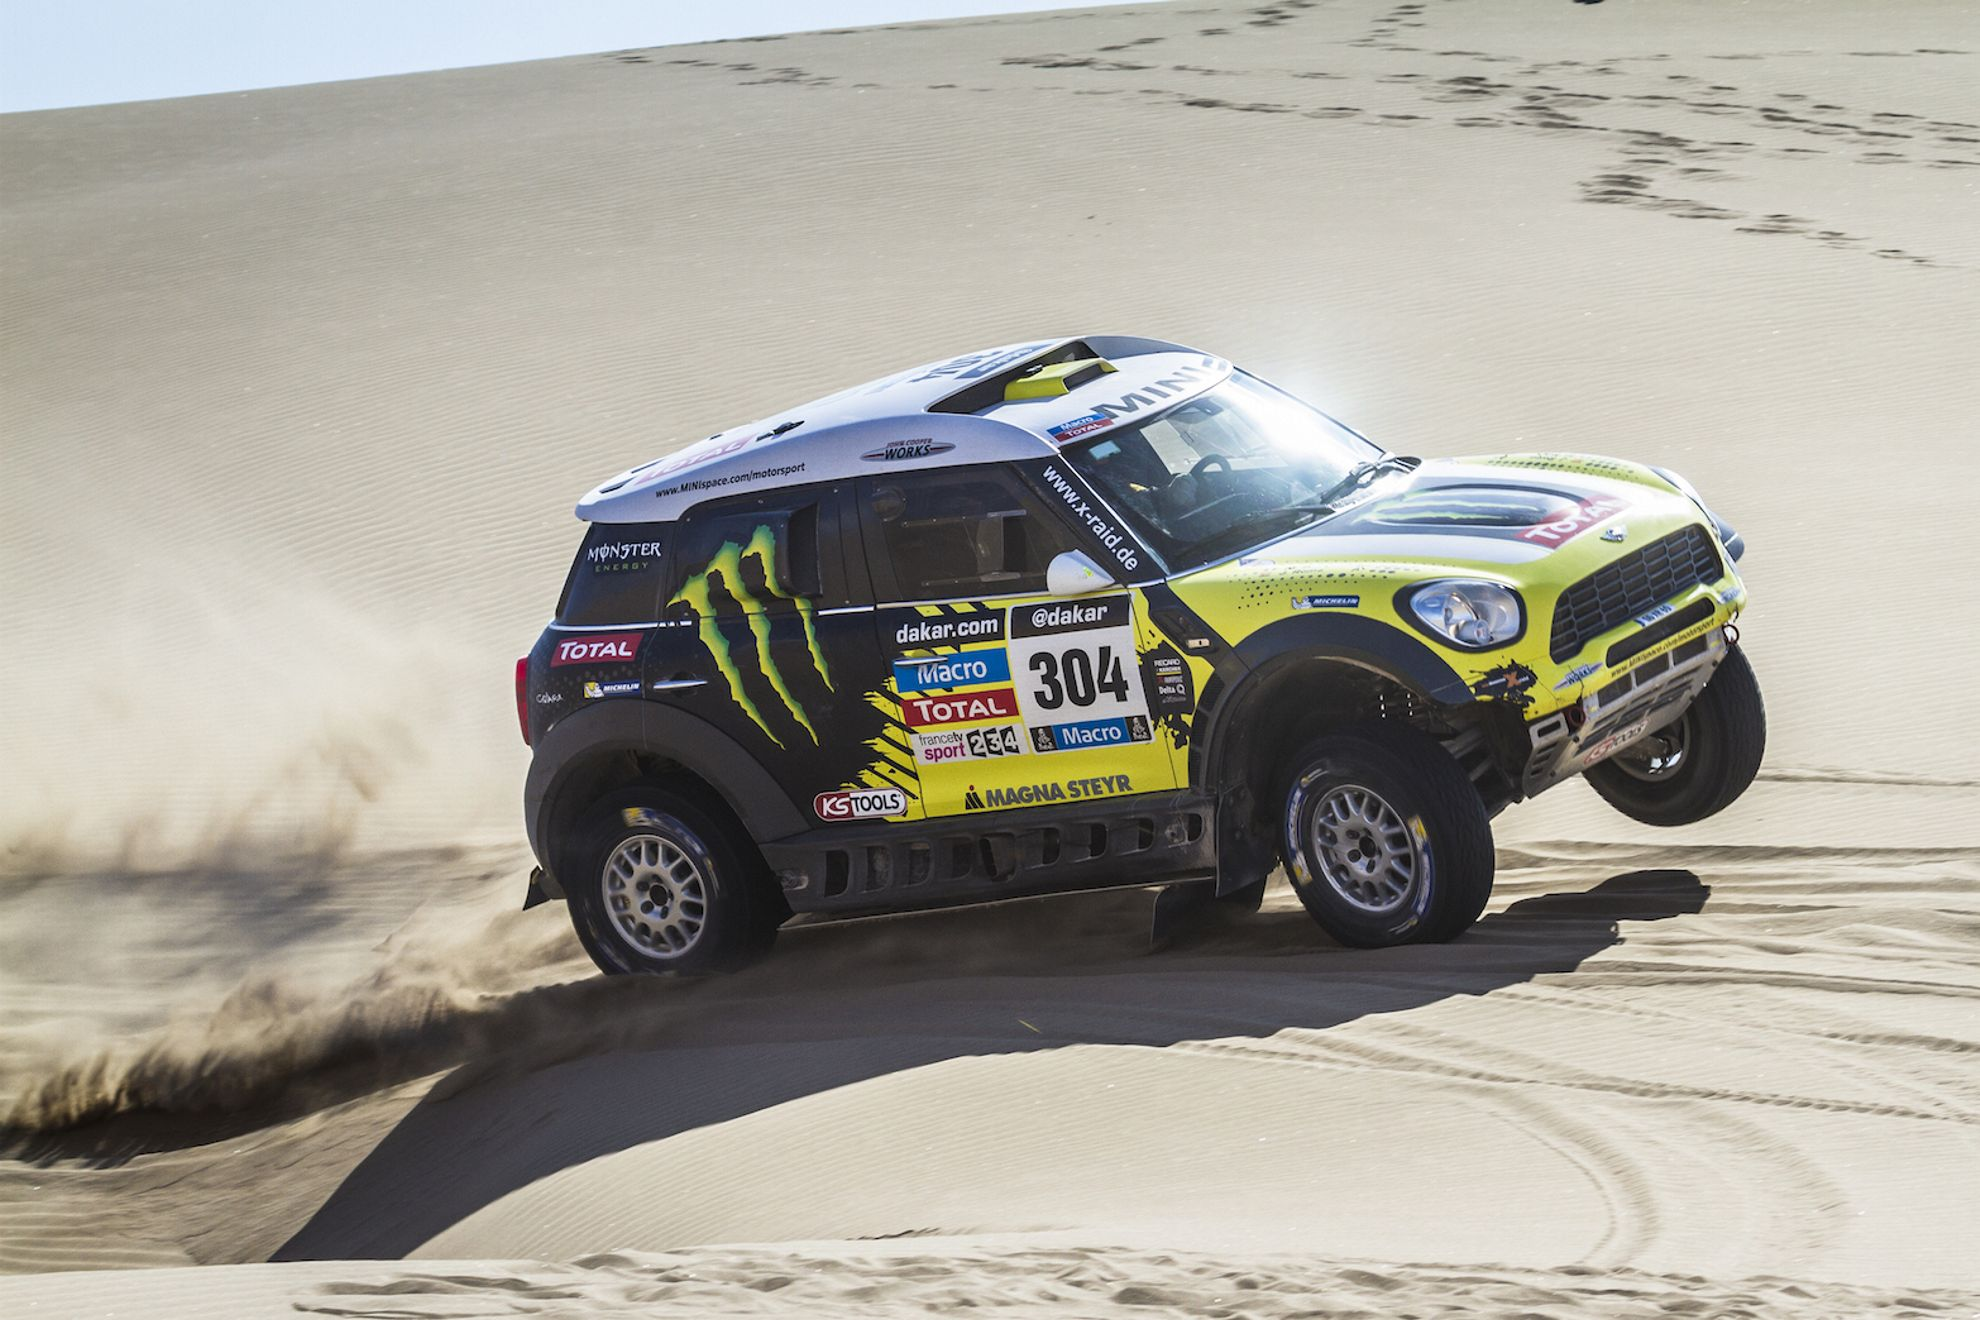 MINI-Dakar-2014-Winner